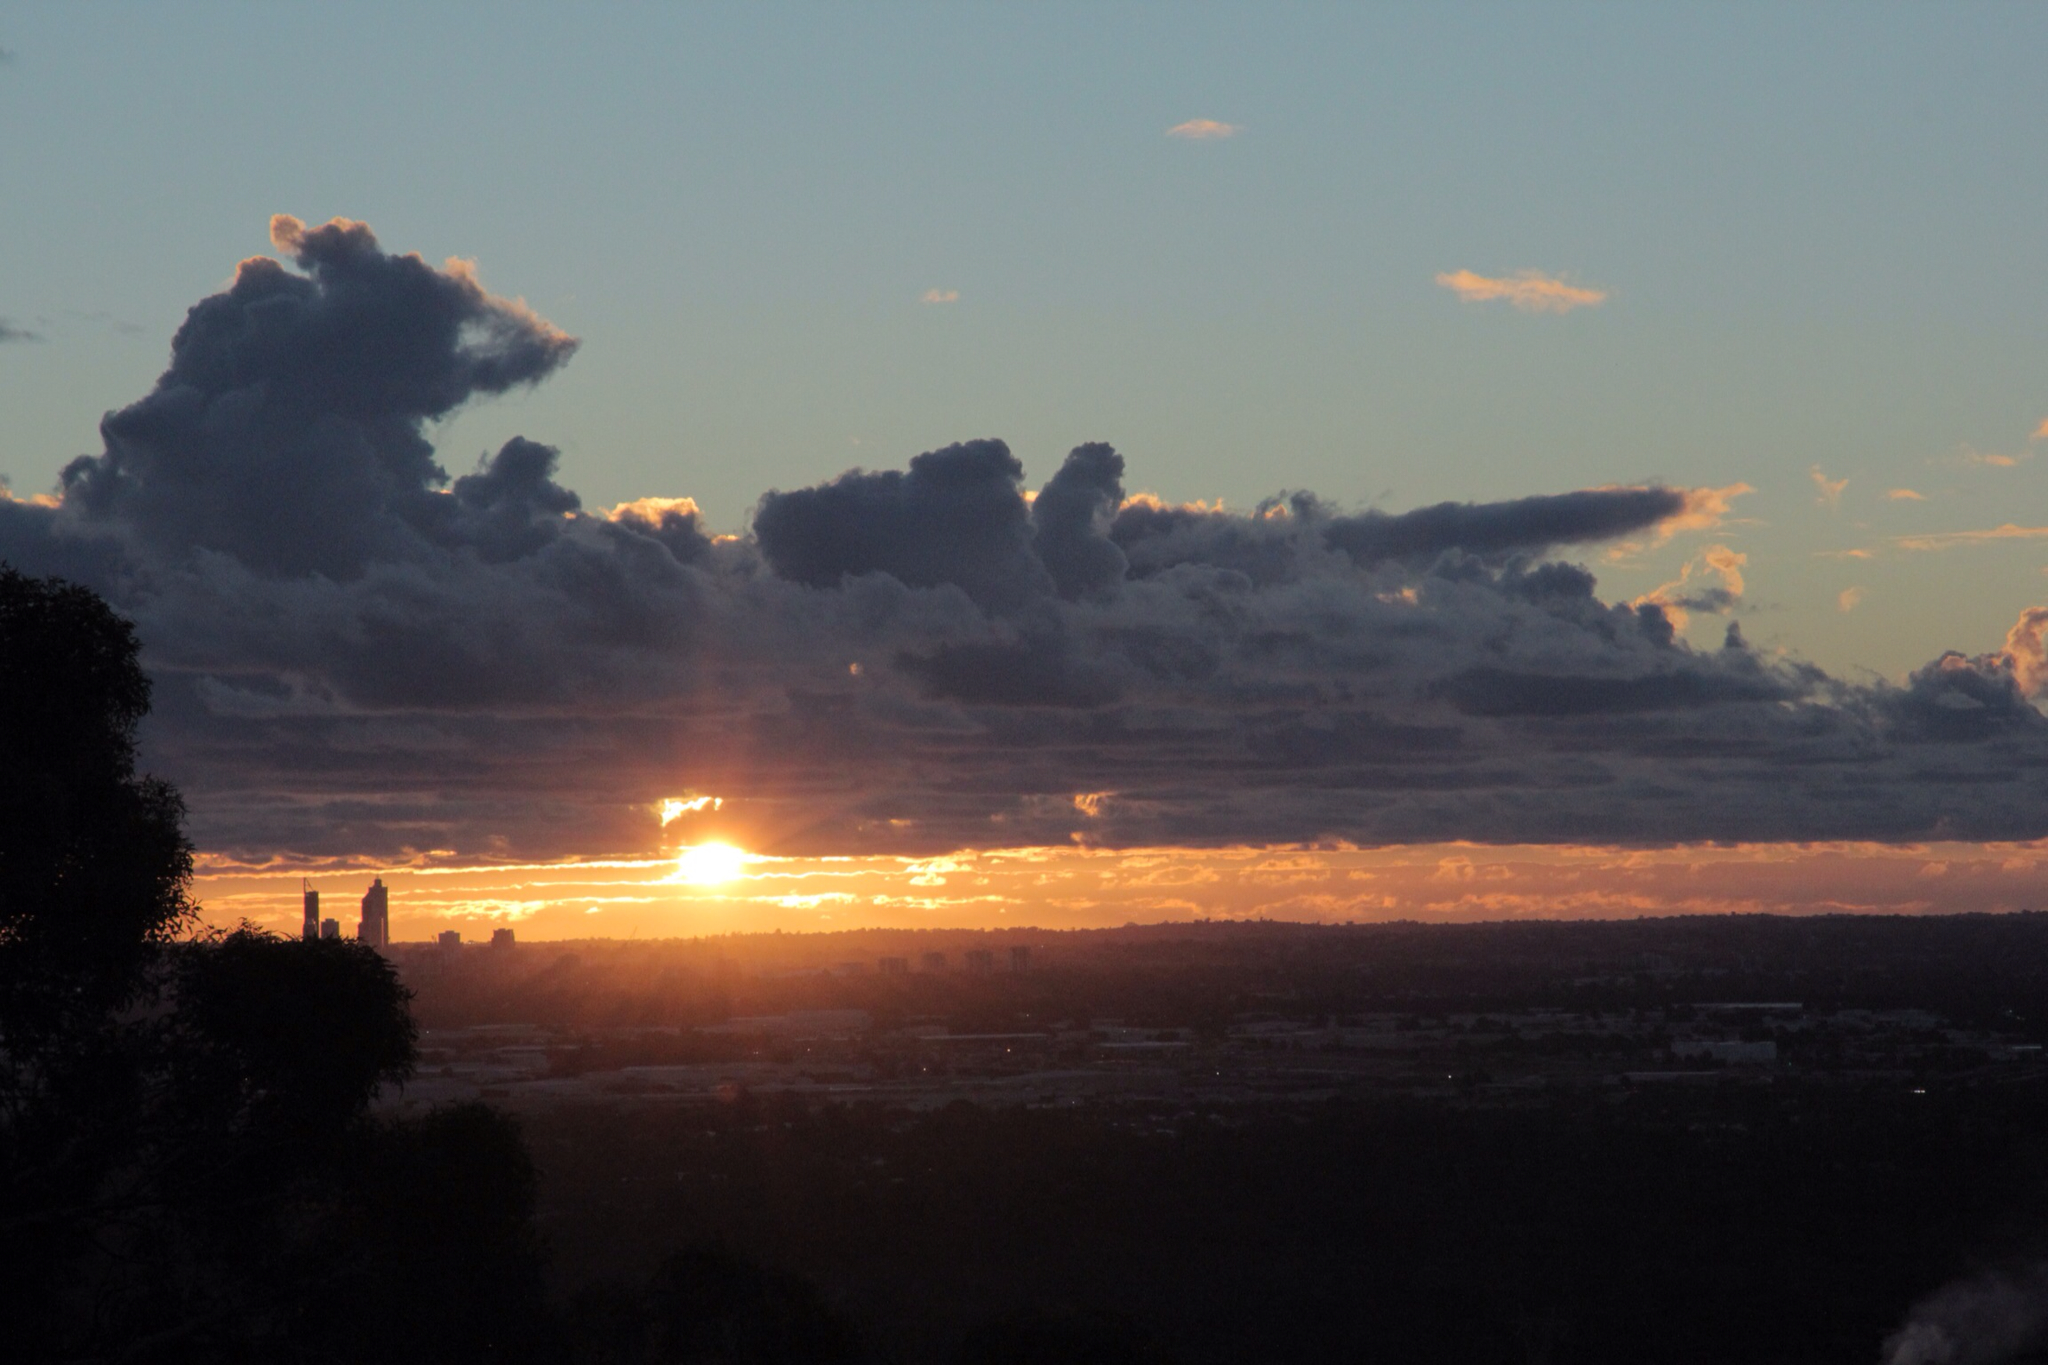 Sunset over Perth